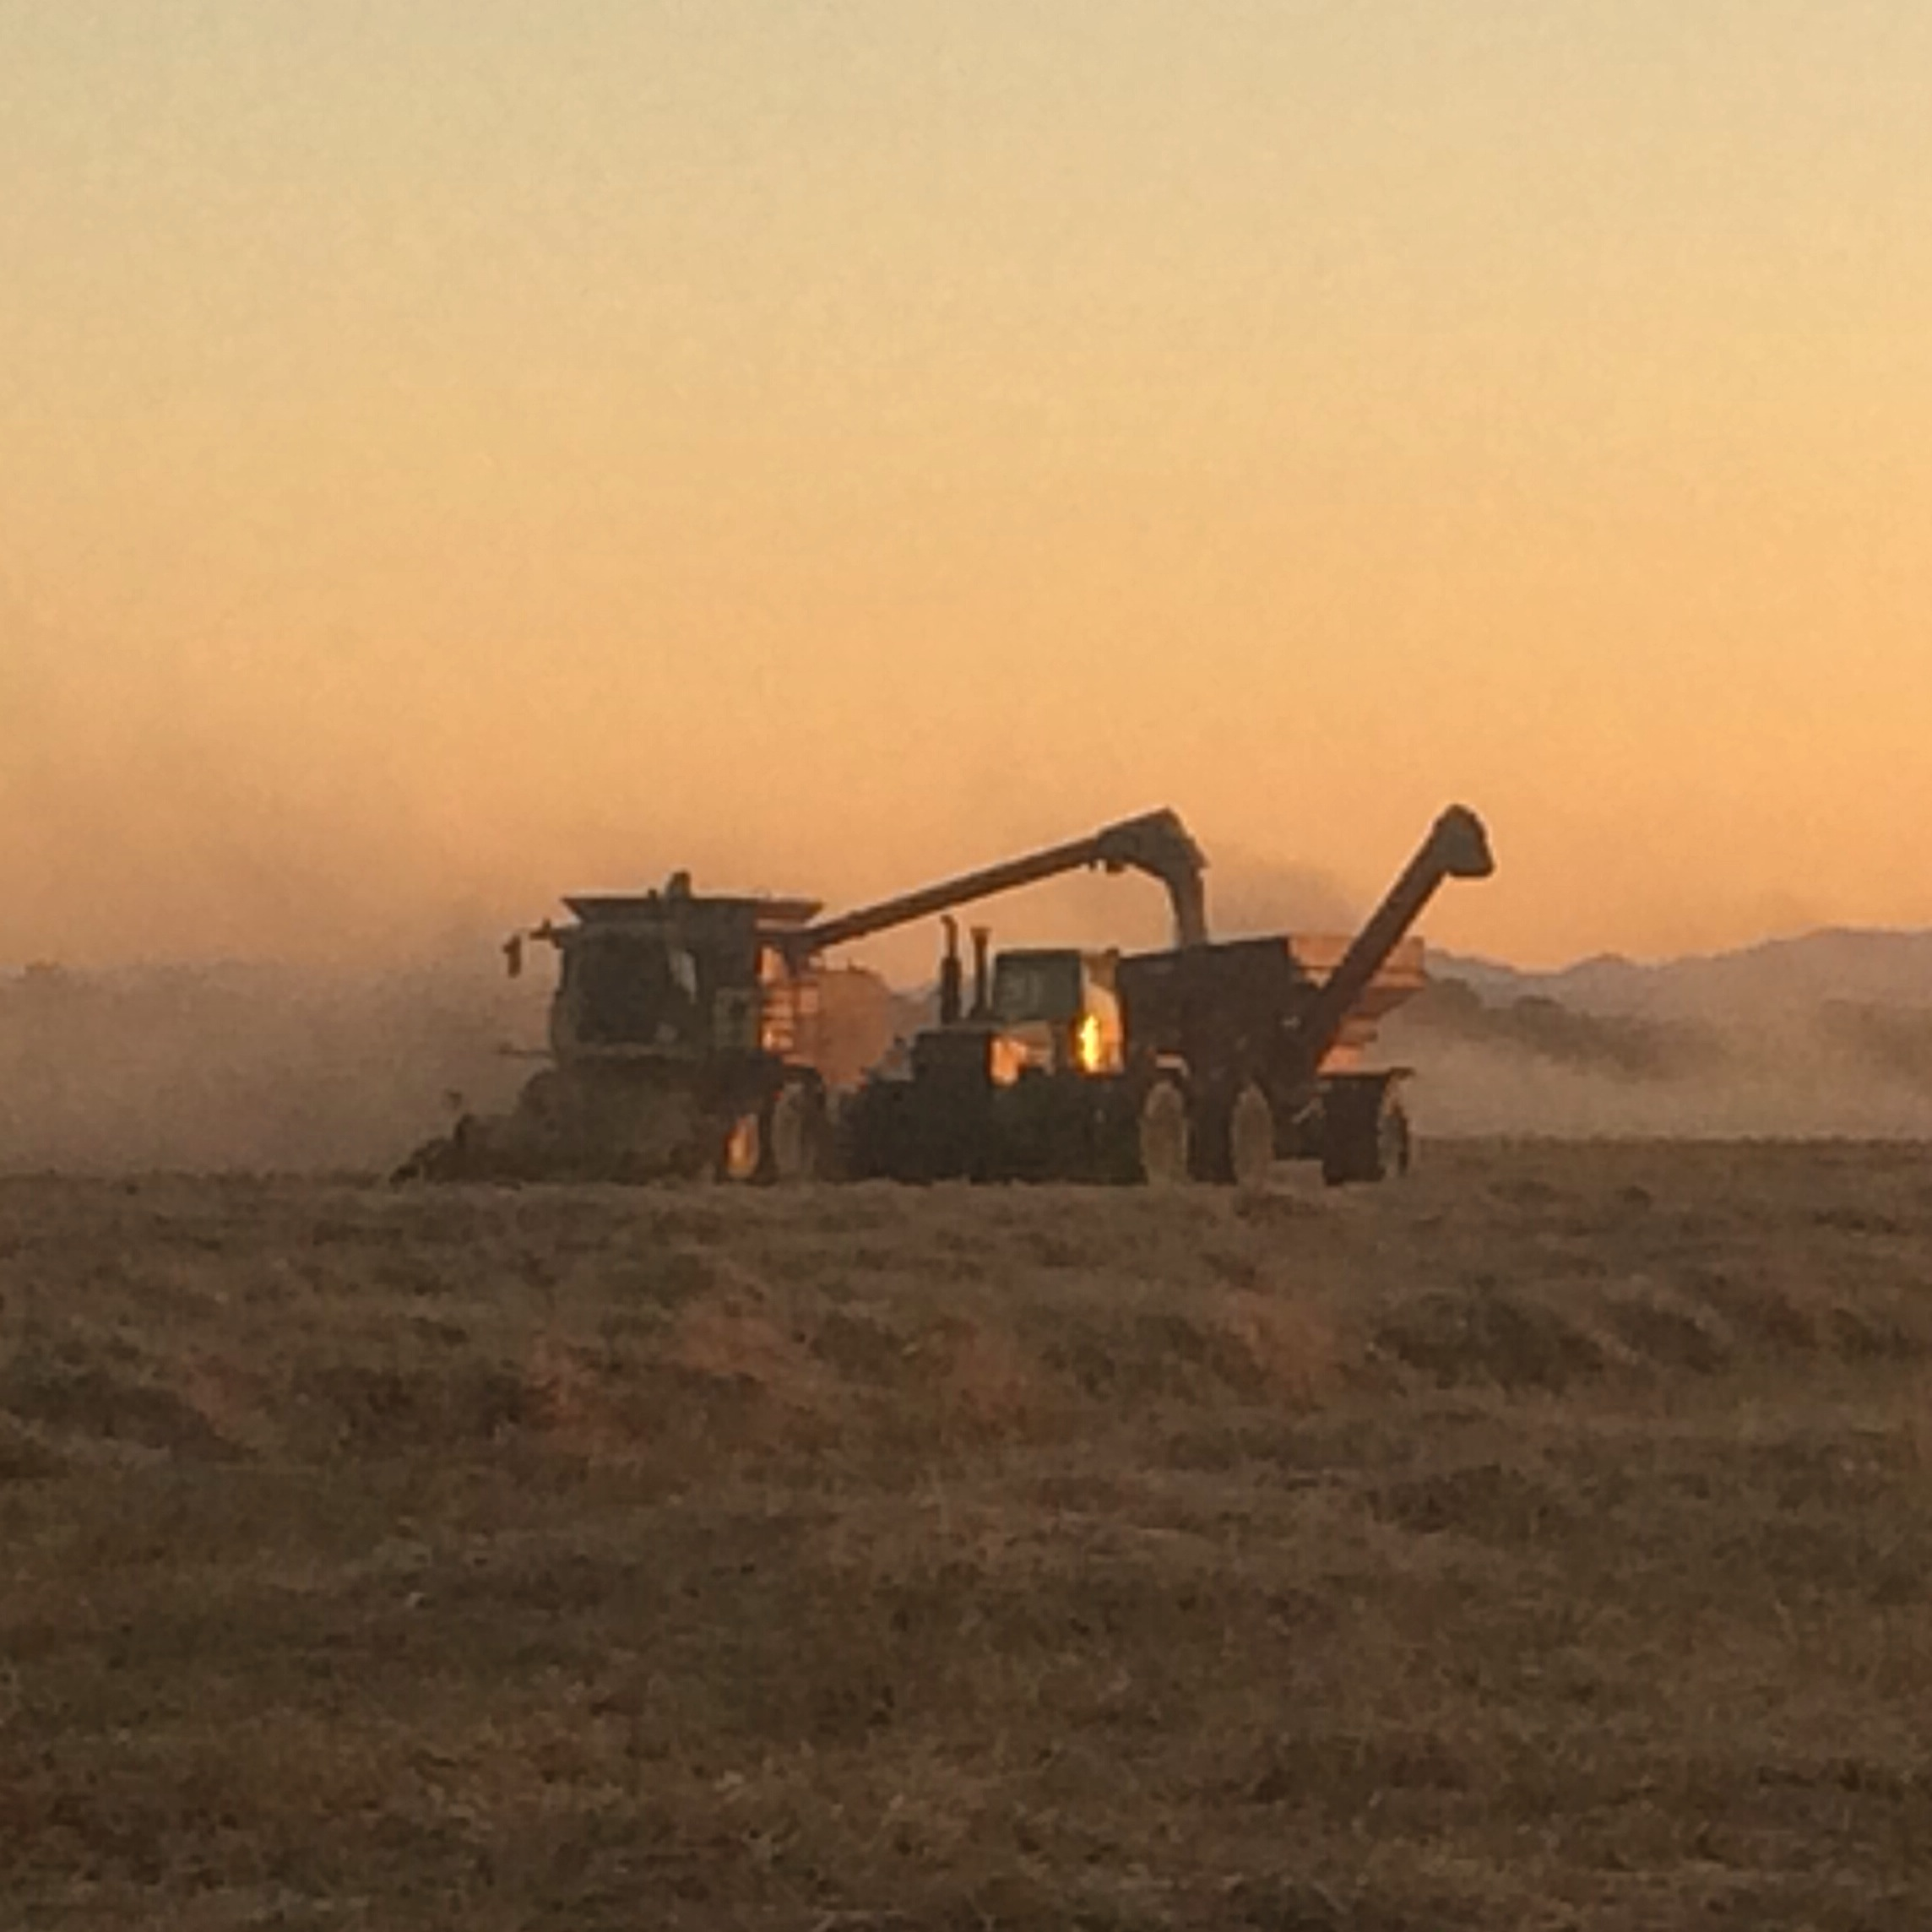 Perfect view of Combining